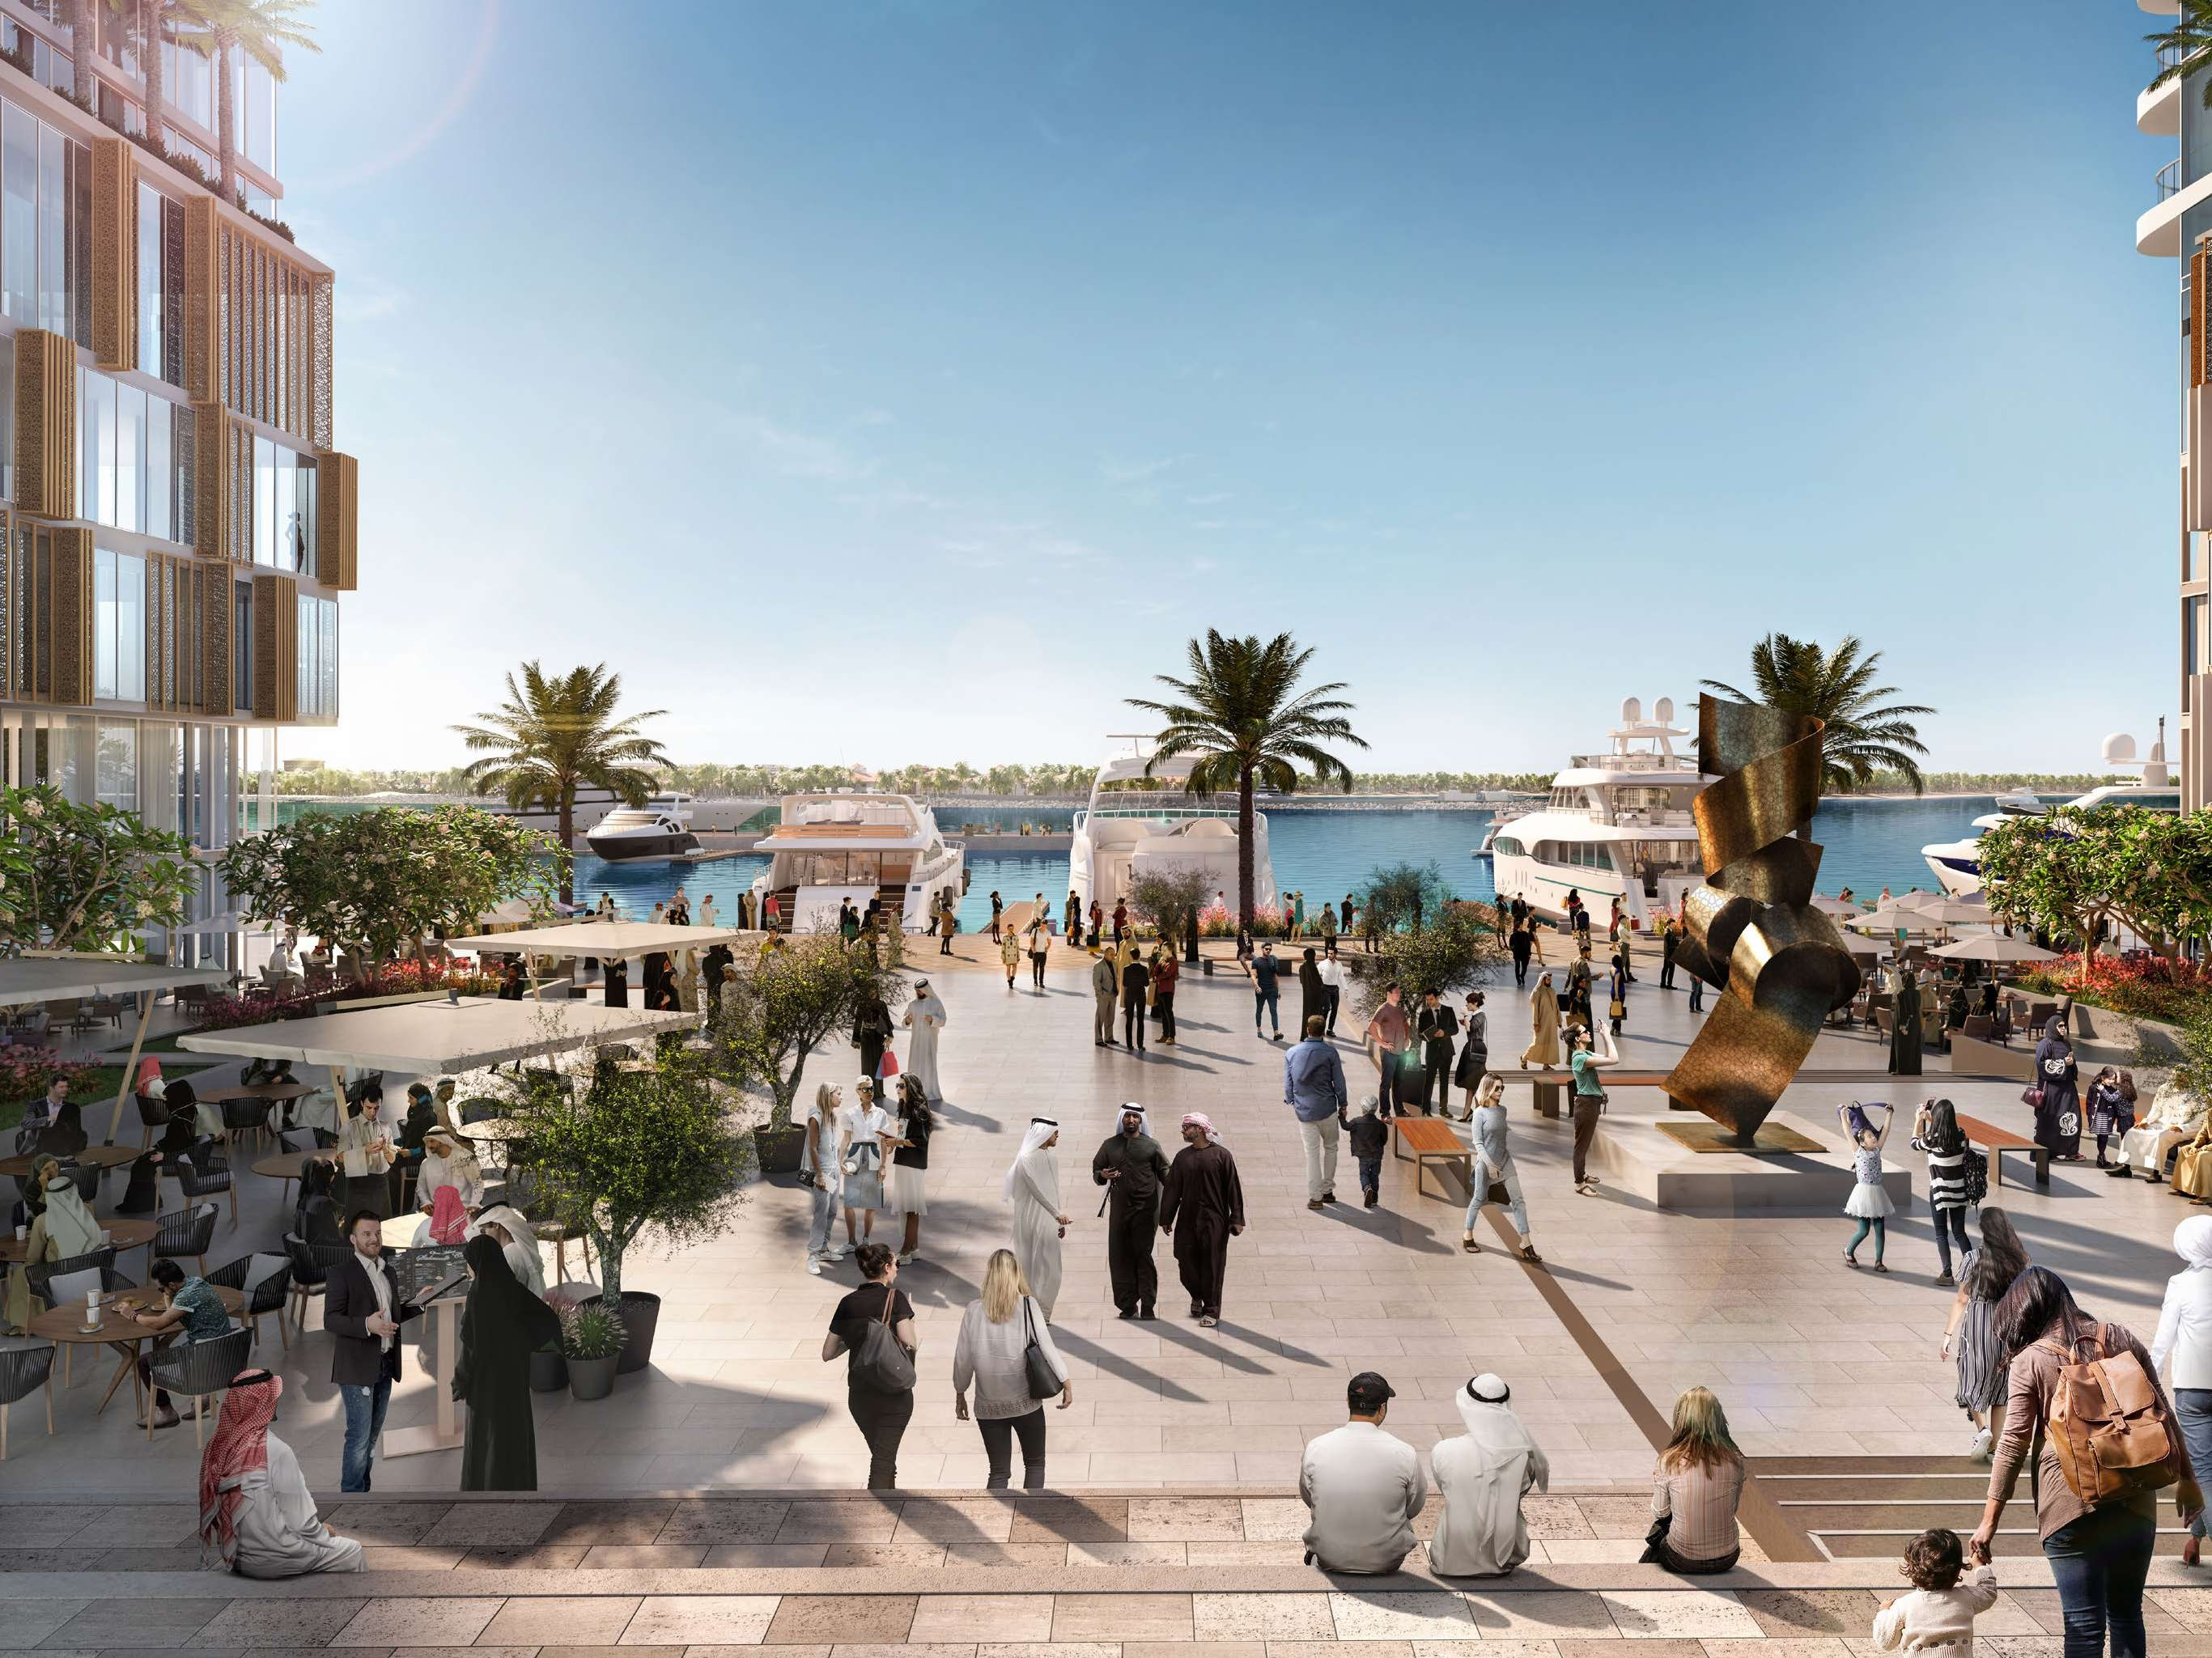 restaurants, and trendy cafes. BEACH VISTA AT EMAAR BEACHFRONT